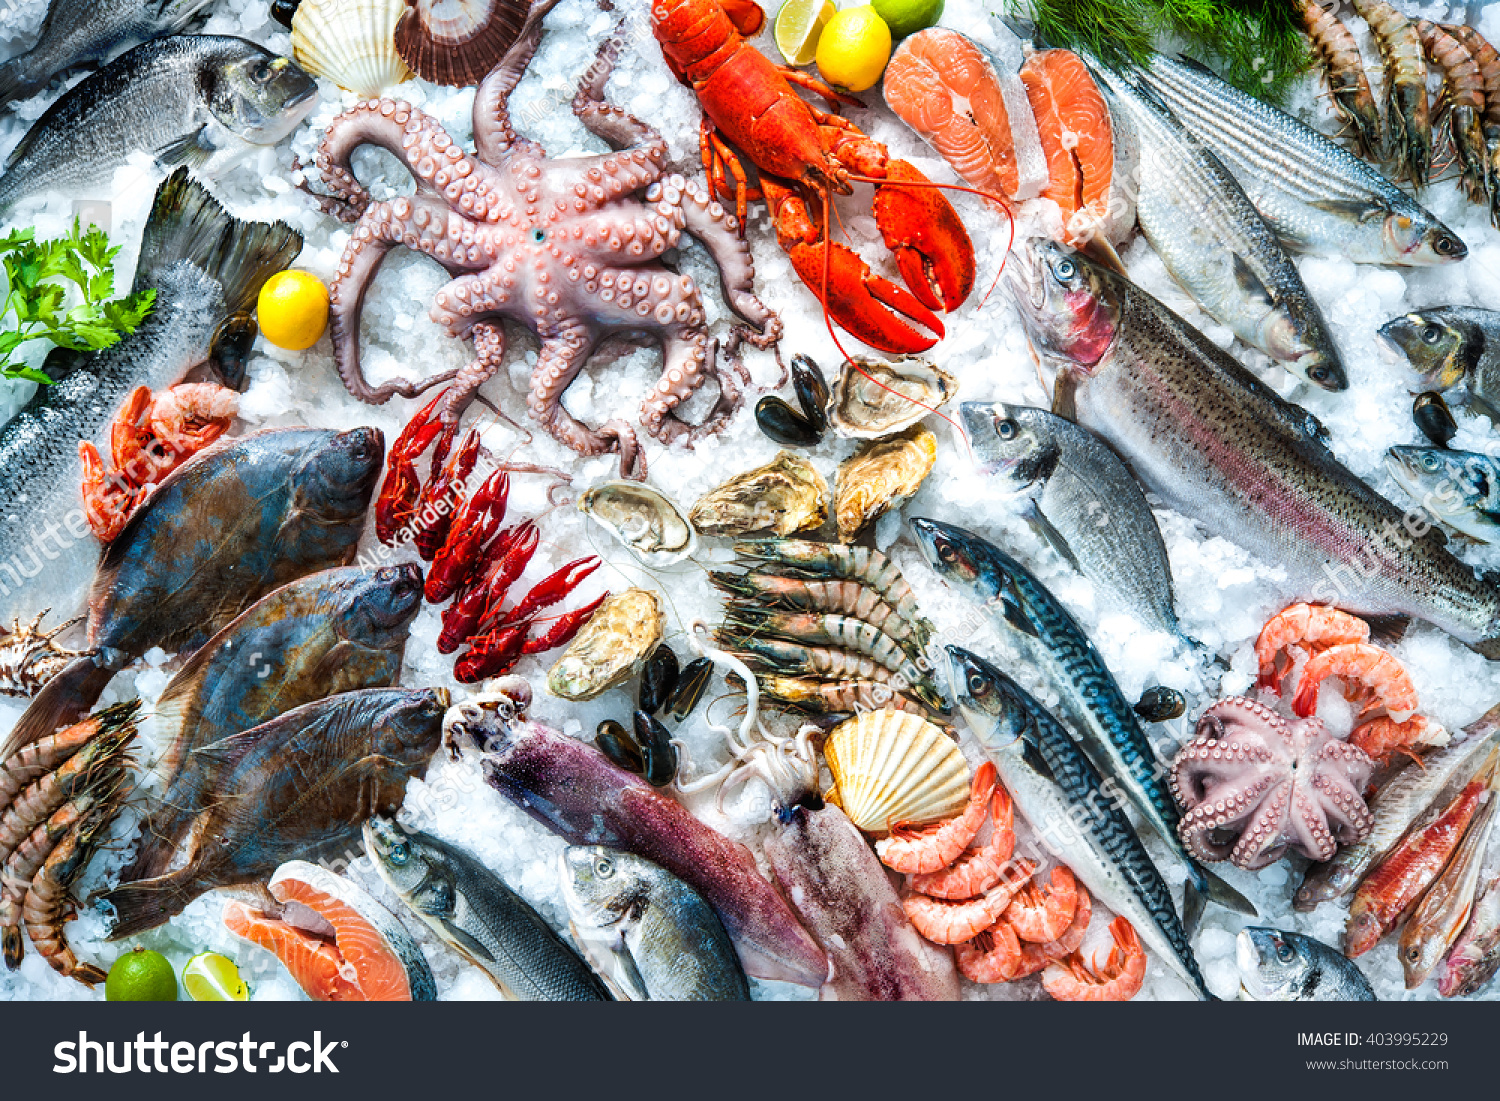 Seafood on ice fish market stock photo 403995229 for Seafood fish market